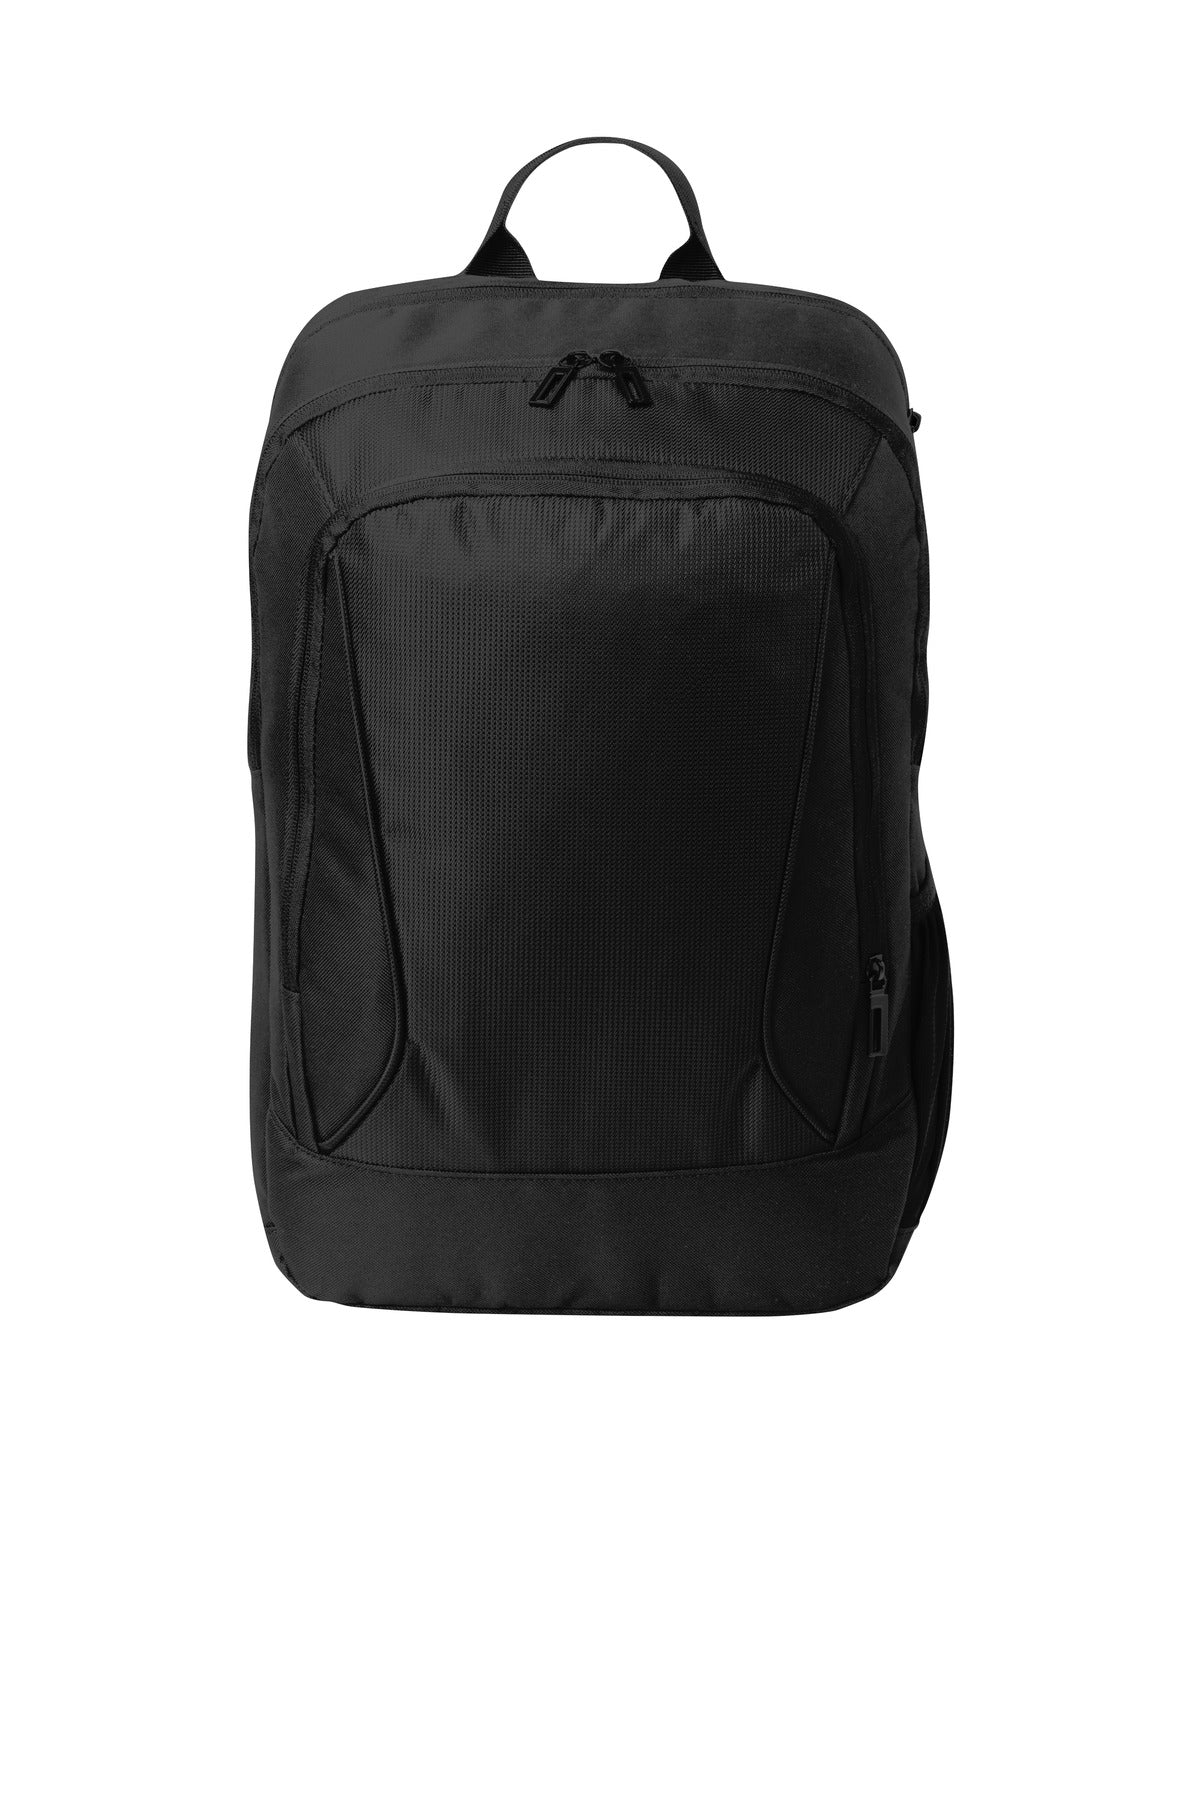 Port Authority  City Backpack. BG222